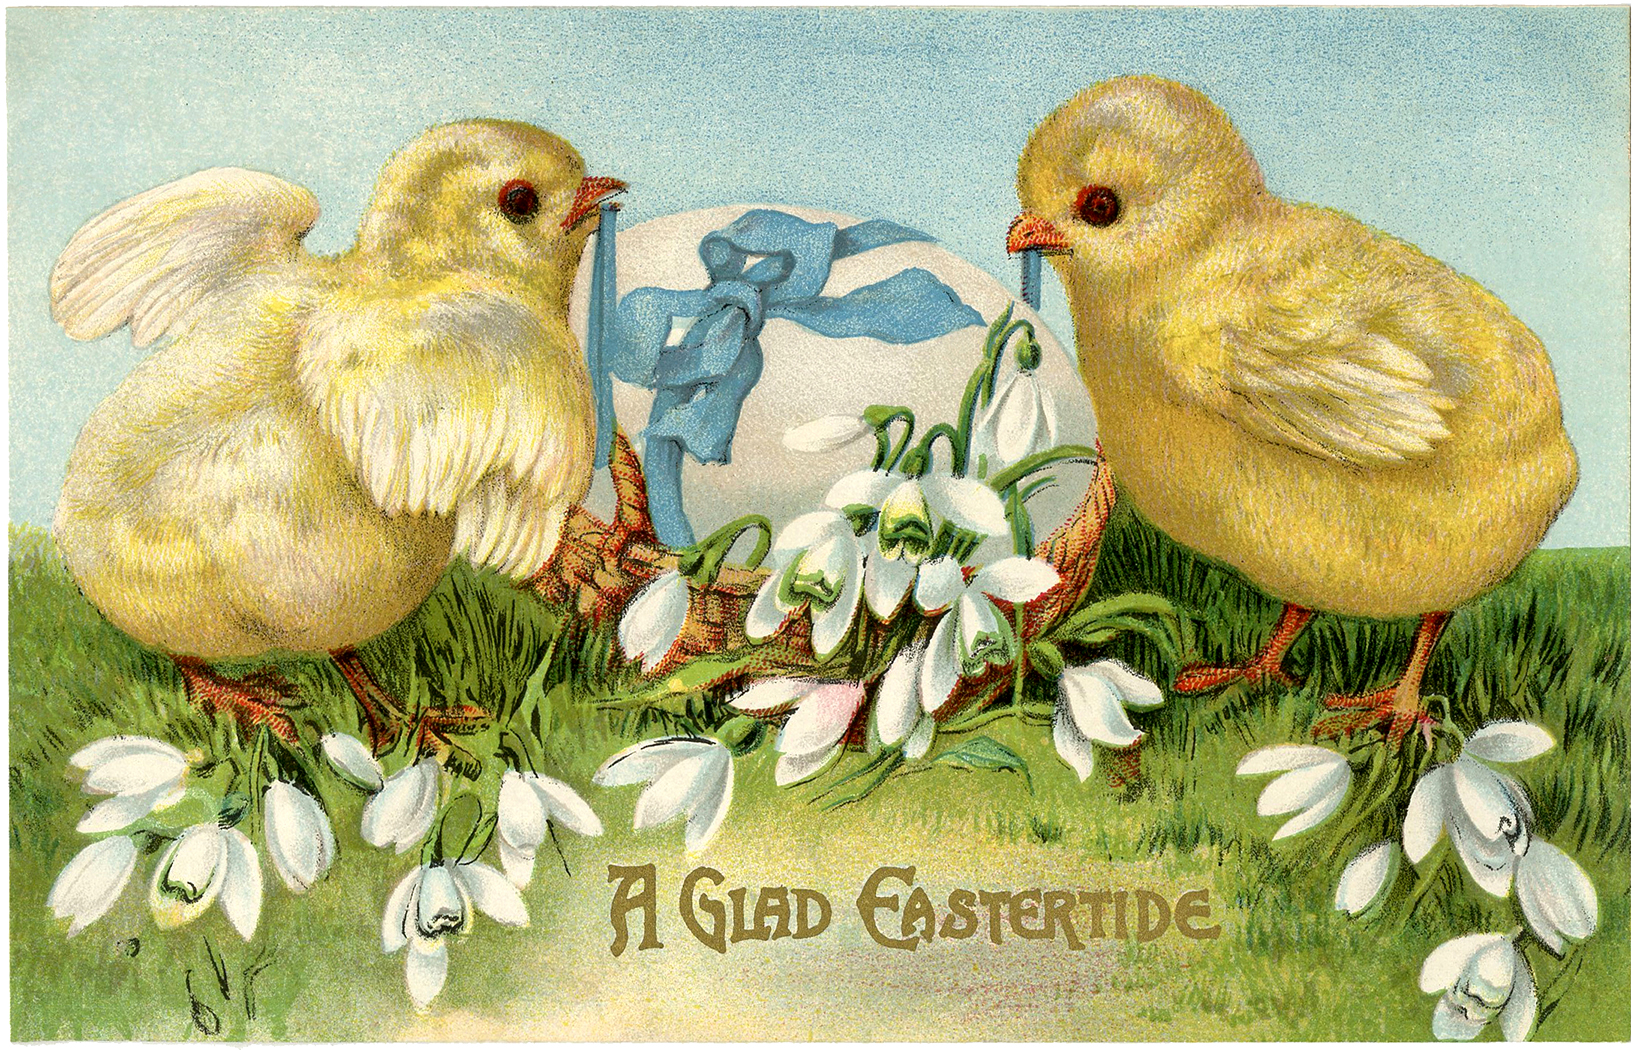 Vintage Easter Card   Adorable Peeps   The Graphics Fairy 1637x1050